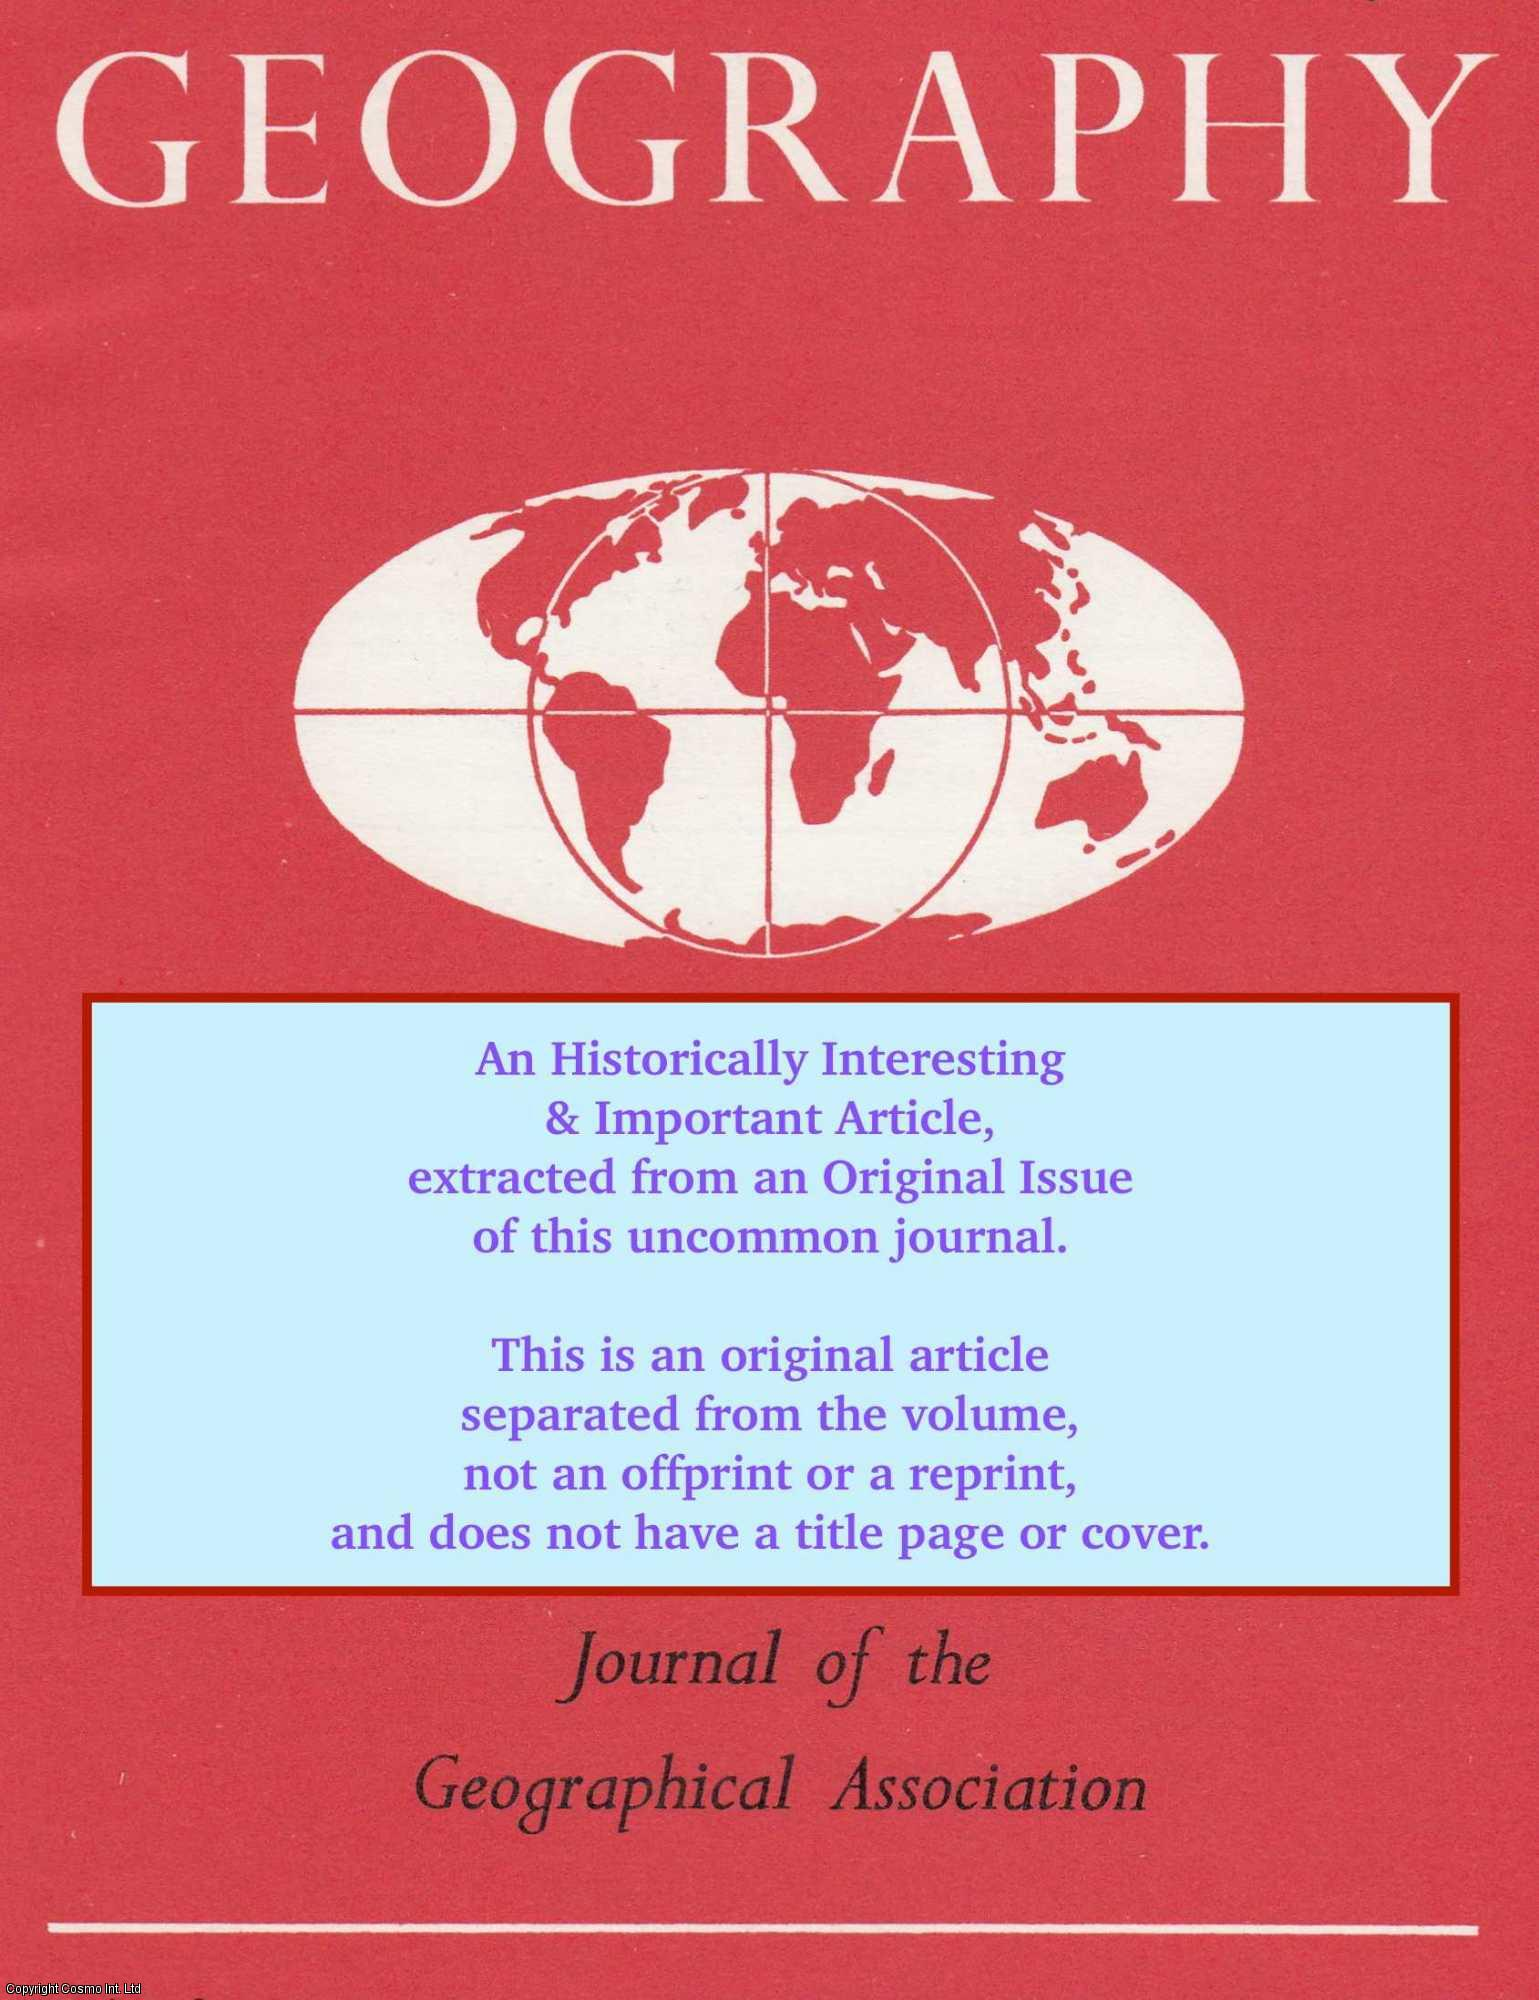 CLARKE, C. G. - Urbanization in The Caribbean. An original article from The Journal of The Geographical Association, 1974.